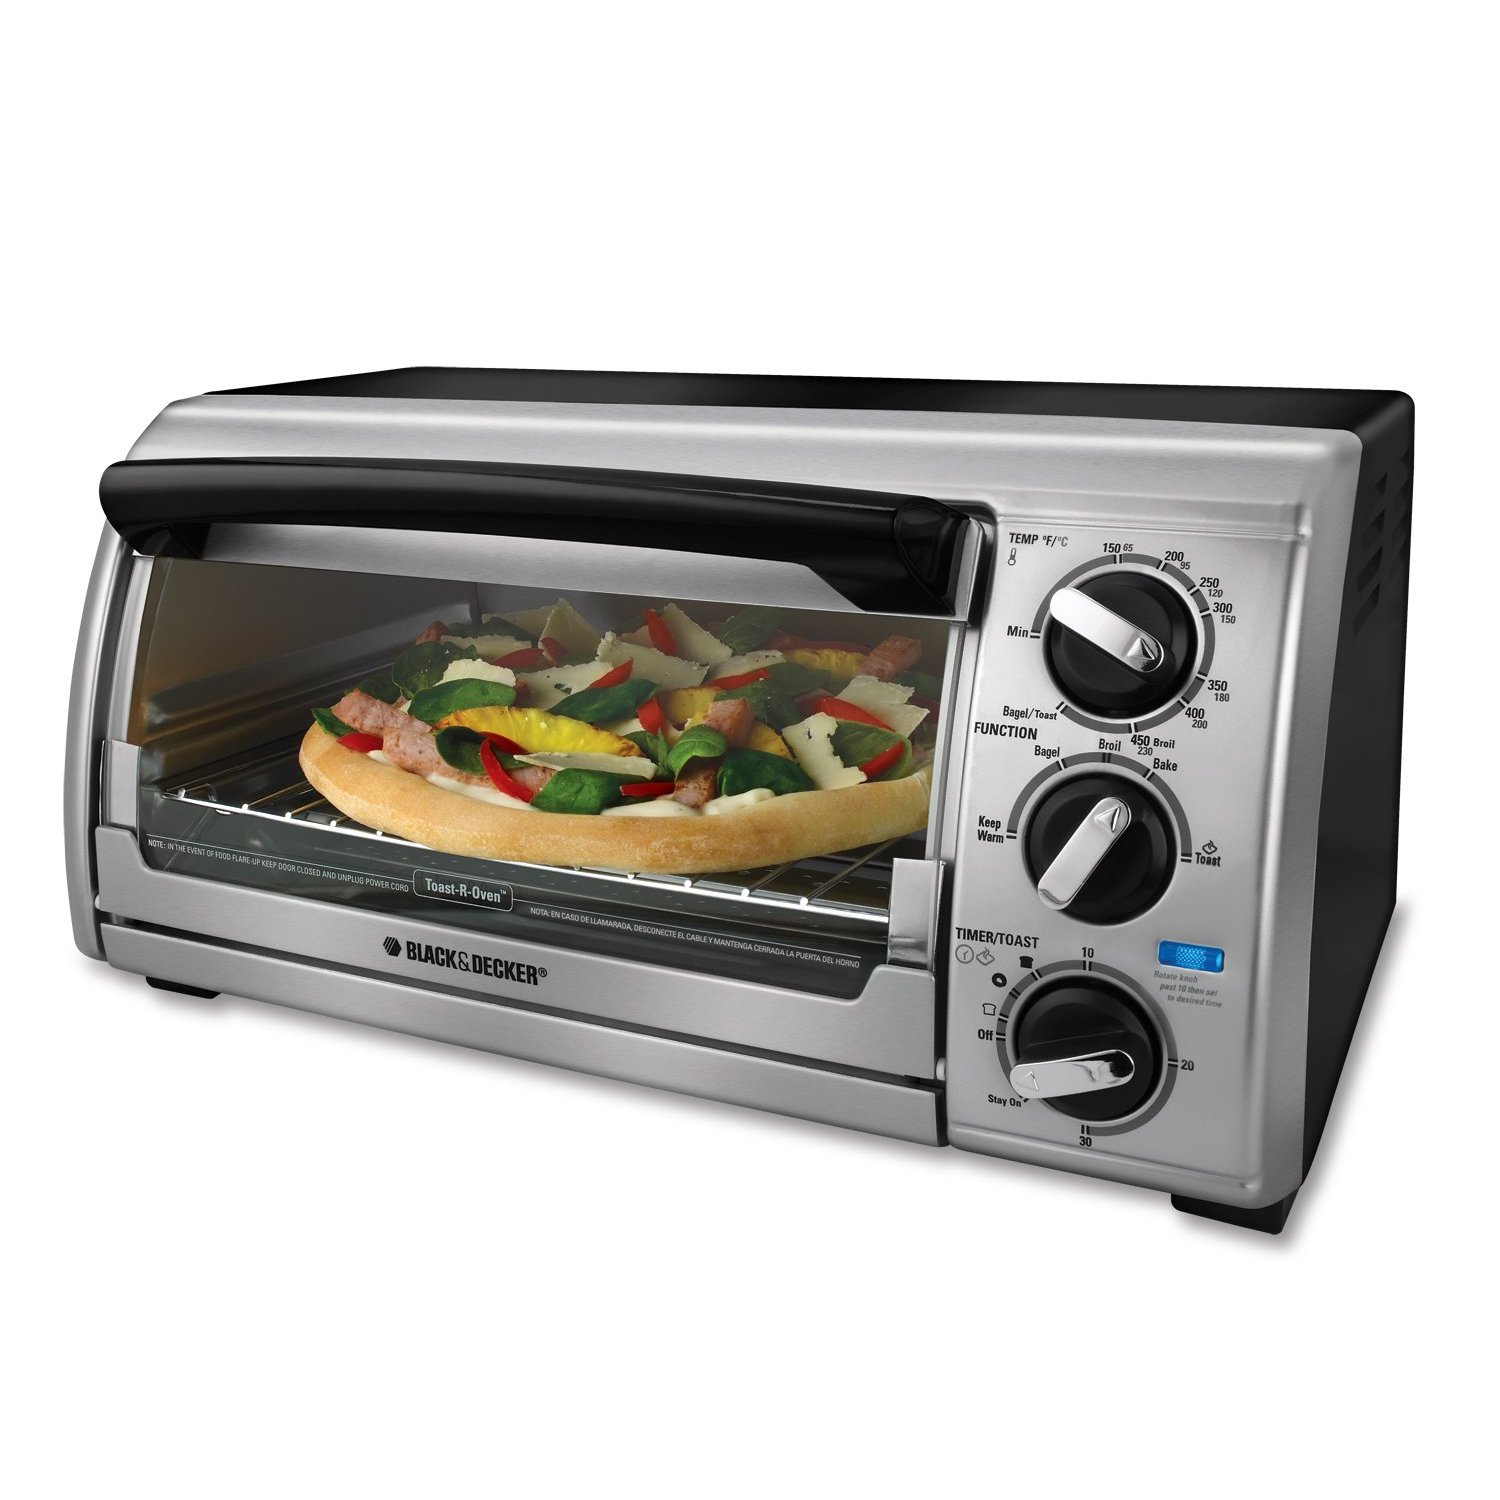 kitchen appliance packages: Reviews on Black Decker Toaster Ovens